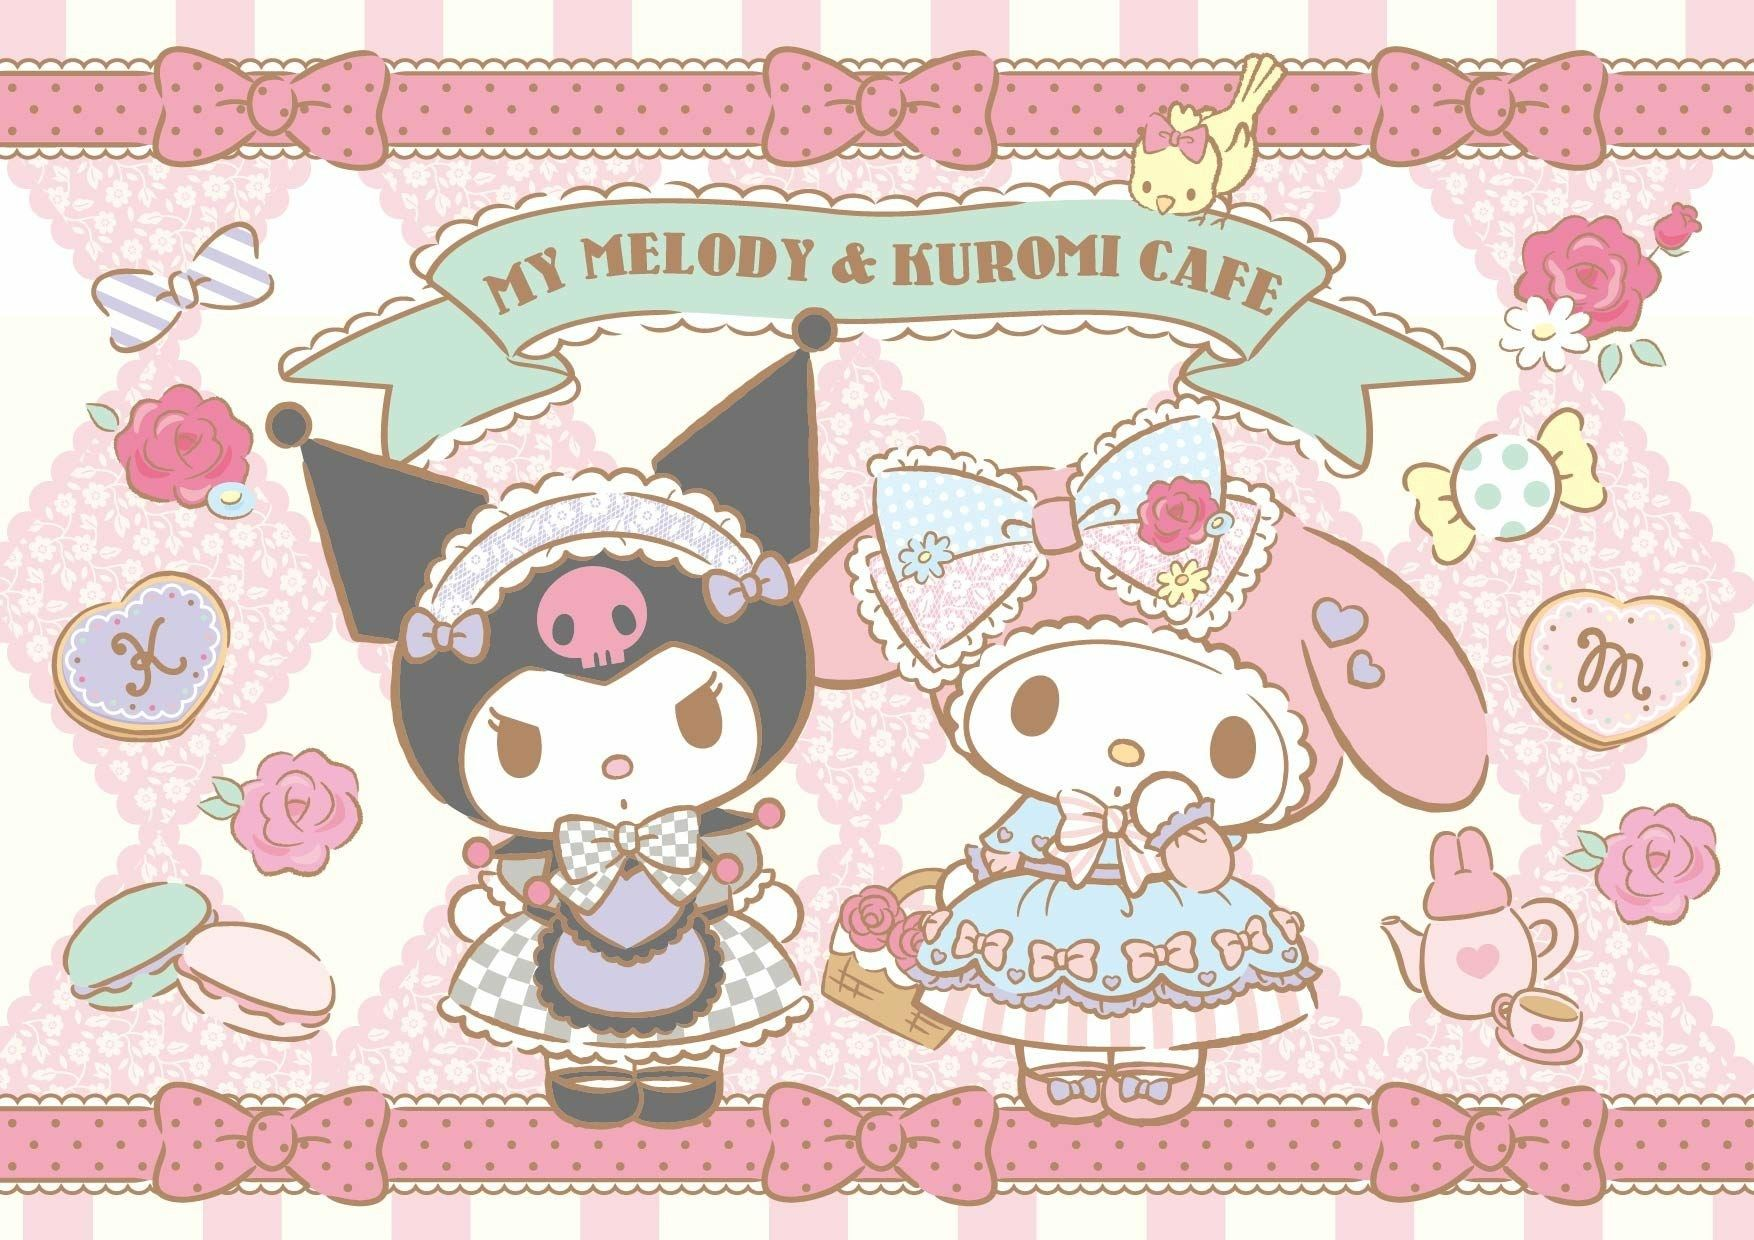 My Melody & Kuromi Cafe | My melody, Hello kitty wallpaper ...